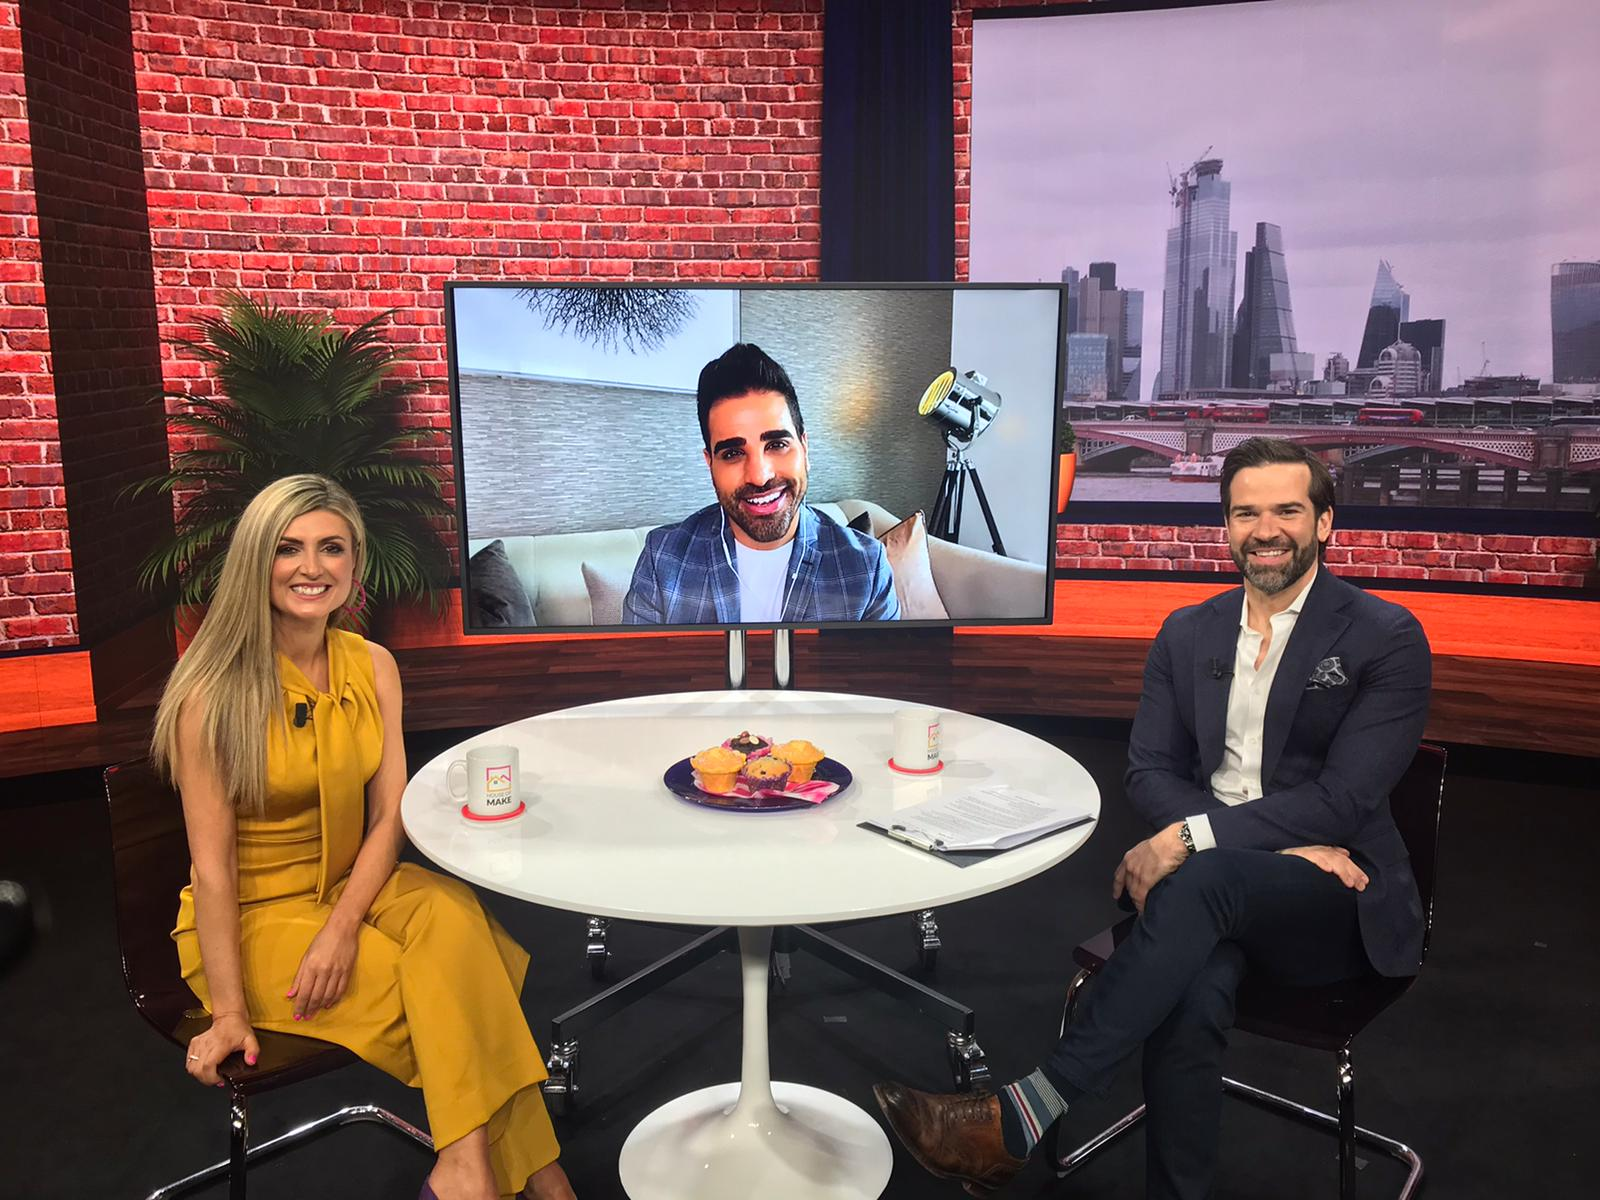 Make Events | Brand Management, Corporate and Virtual Events Company | Dr Ranj on screen